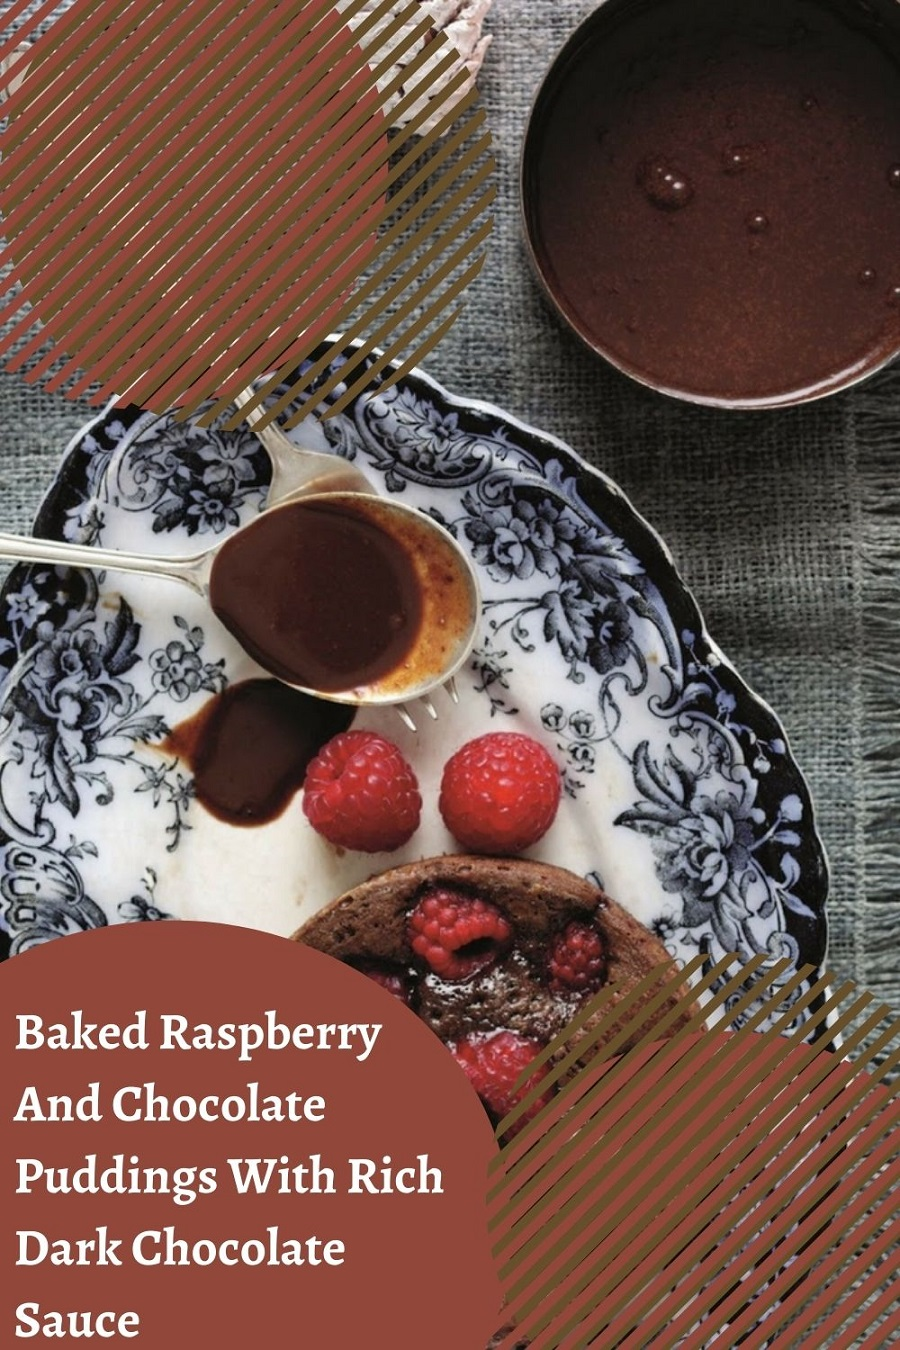 Baked Raspberry And Chocolate Puddings With Rich Dark Chocolate Sauce